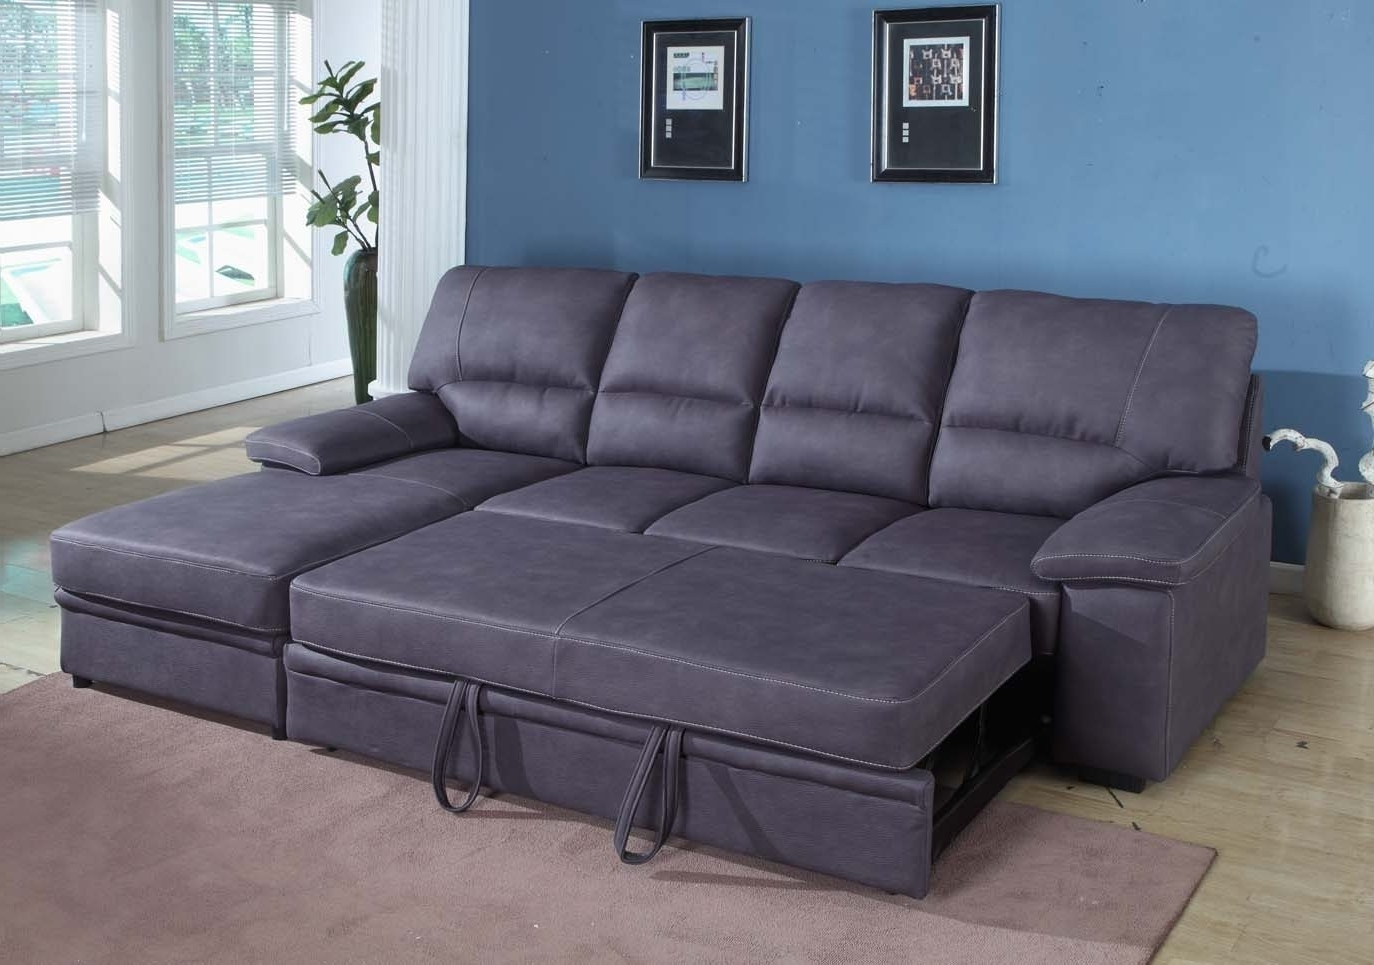 Sofa : Double Size Sleeper Sofa Cheap Pull Out Couch Bed Pull Out For Preferred Pull Out Beds Sectional Sofas (View 13 of 20)